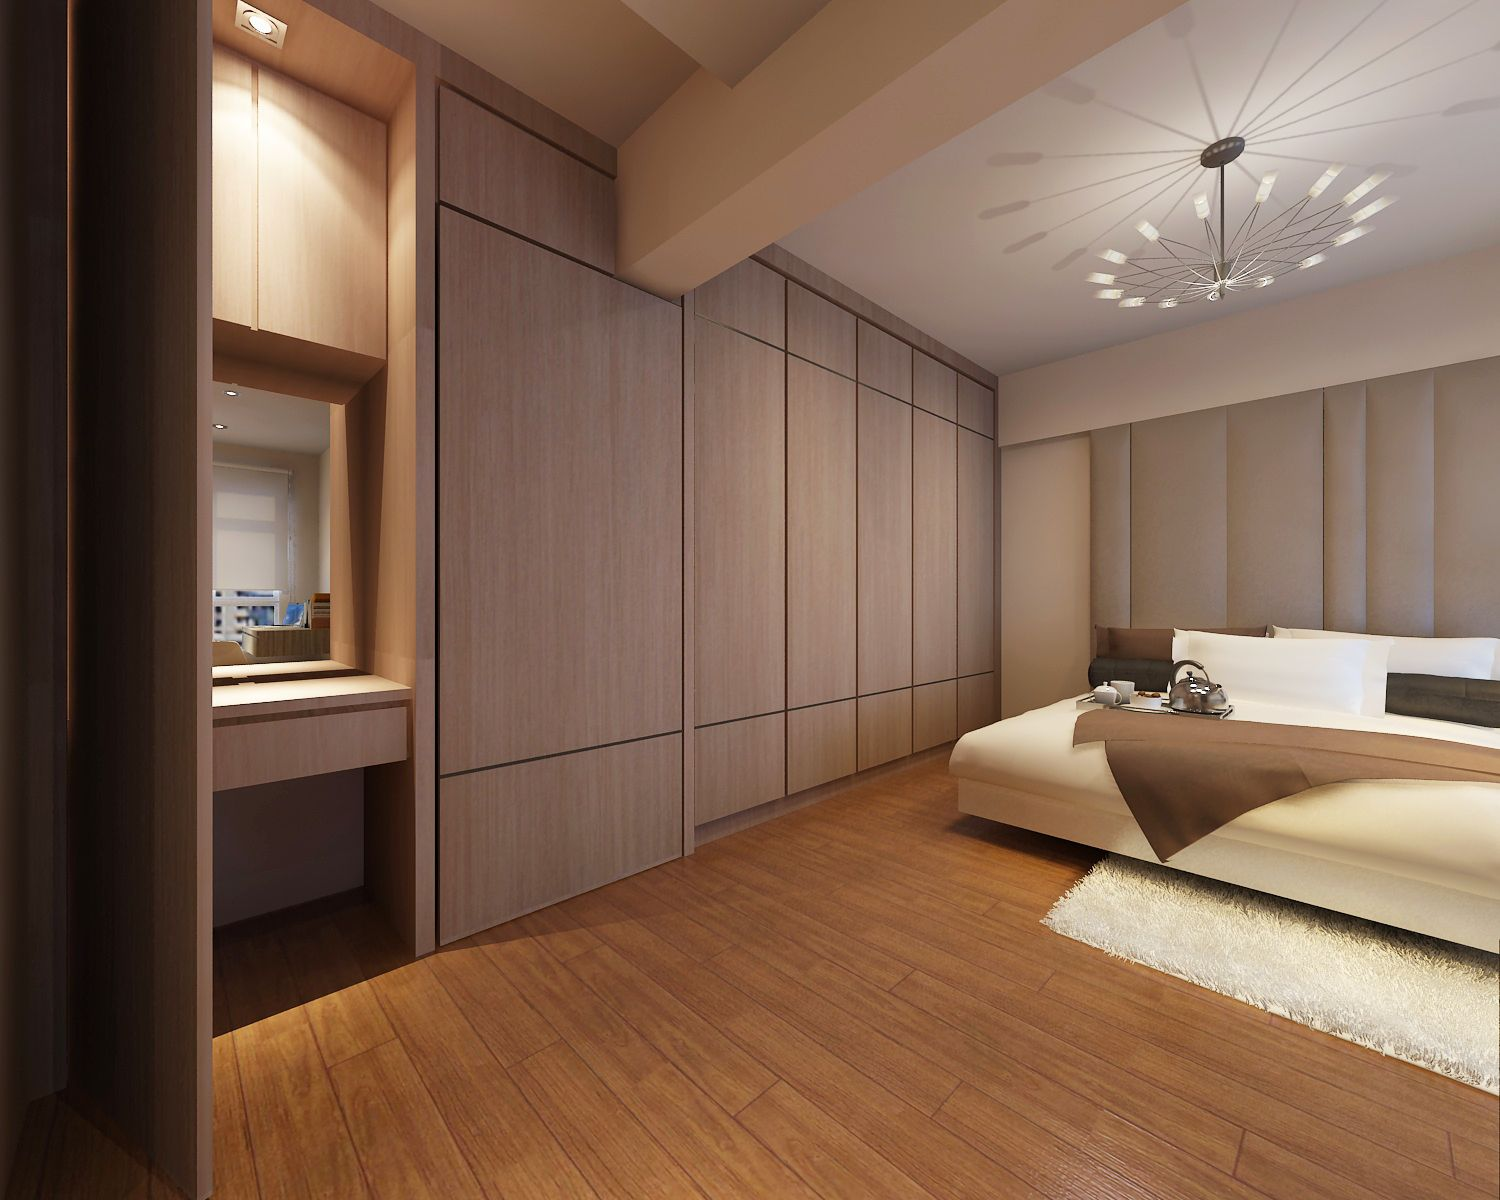 hdb bedroom renovation ideas